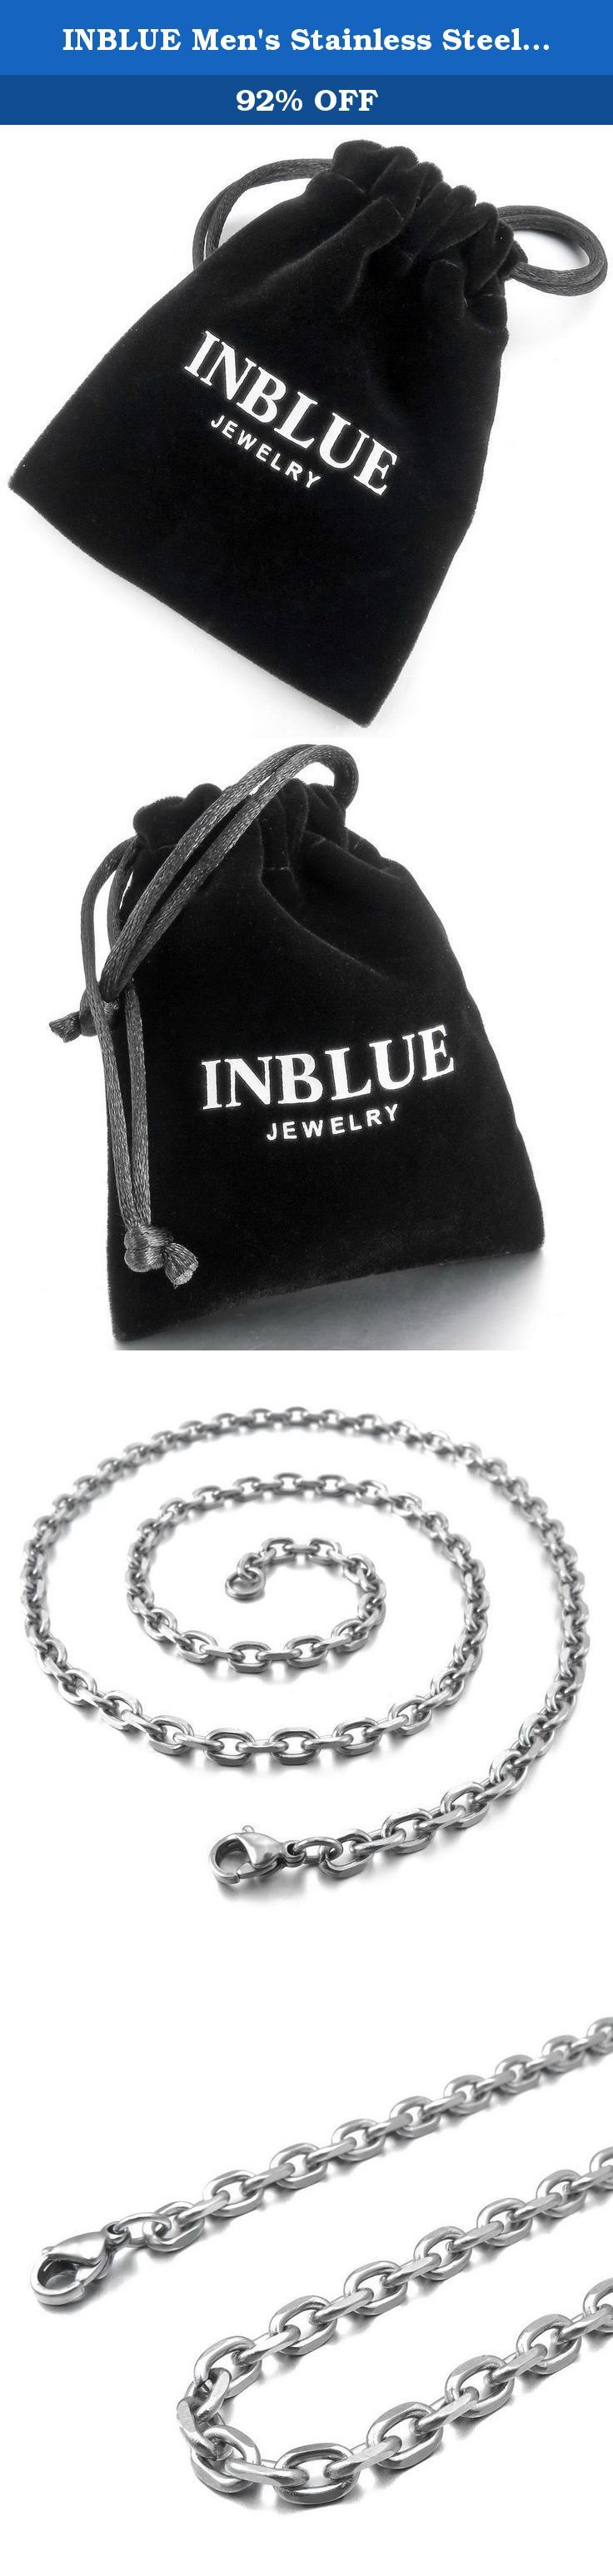 INBLUE Men's Stainless Steel Pendant Necklace Black Bible Lords Prayer Cross Skateboard -with 23 inch Chain. INBLUE - High quality Jewelry Discover the INBLUE Collection of jewelry. The selection of high-quality jewelry featured in the INBLUE Collection offers Great values at affordable Price, they mainly made of high quality Stainless Steel, Tungsten, Silver and Leather. Find a special gift for a loved one or a beautiful piece that complements your personal style with jewelry from the...